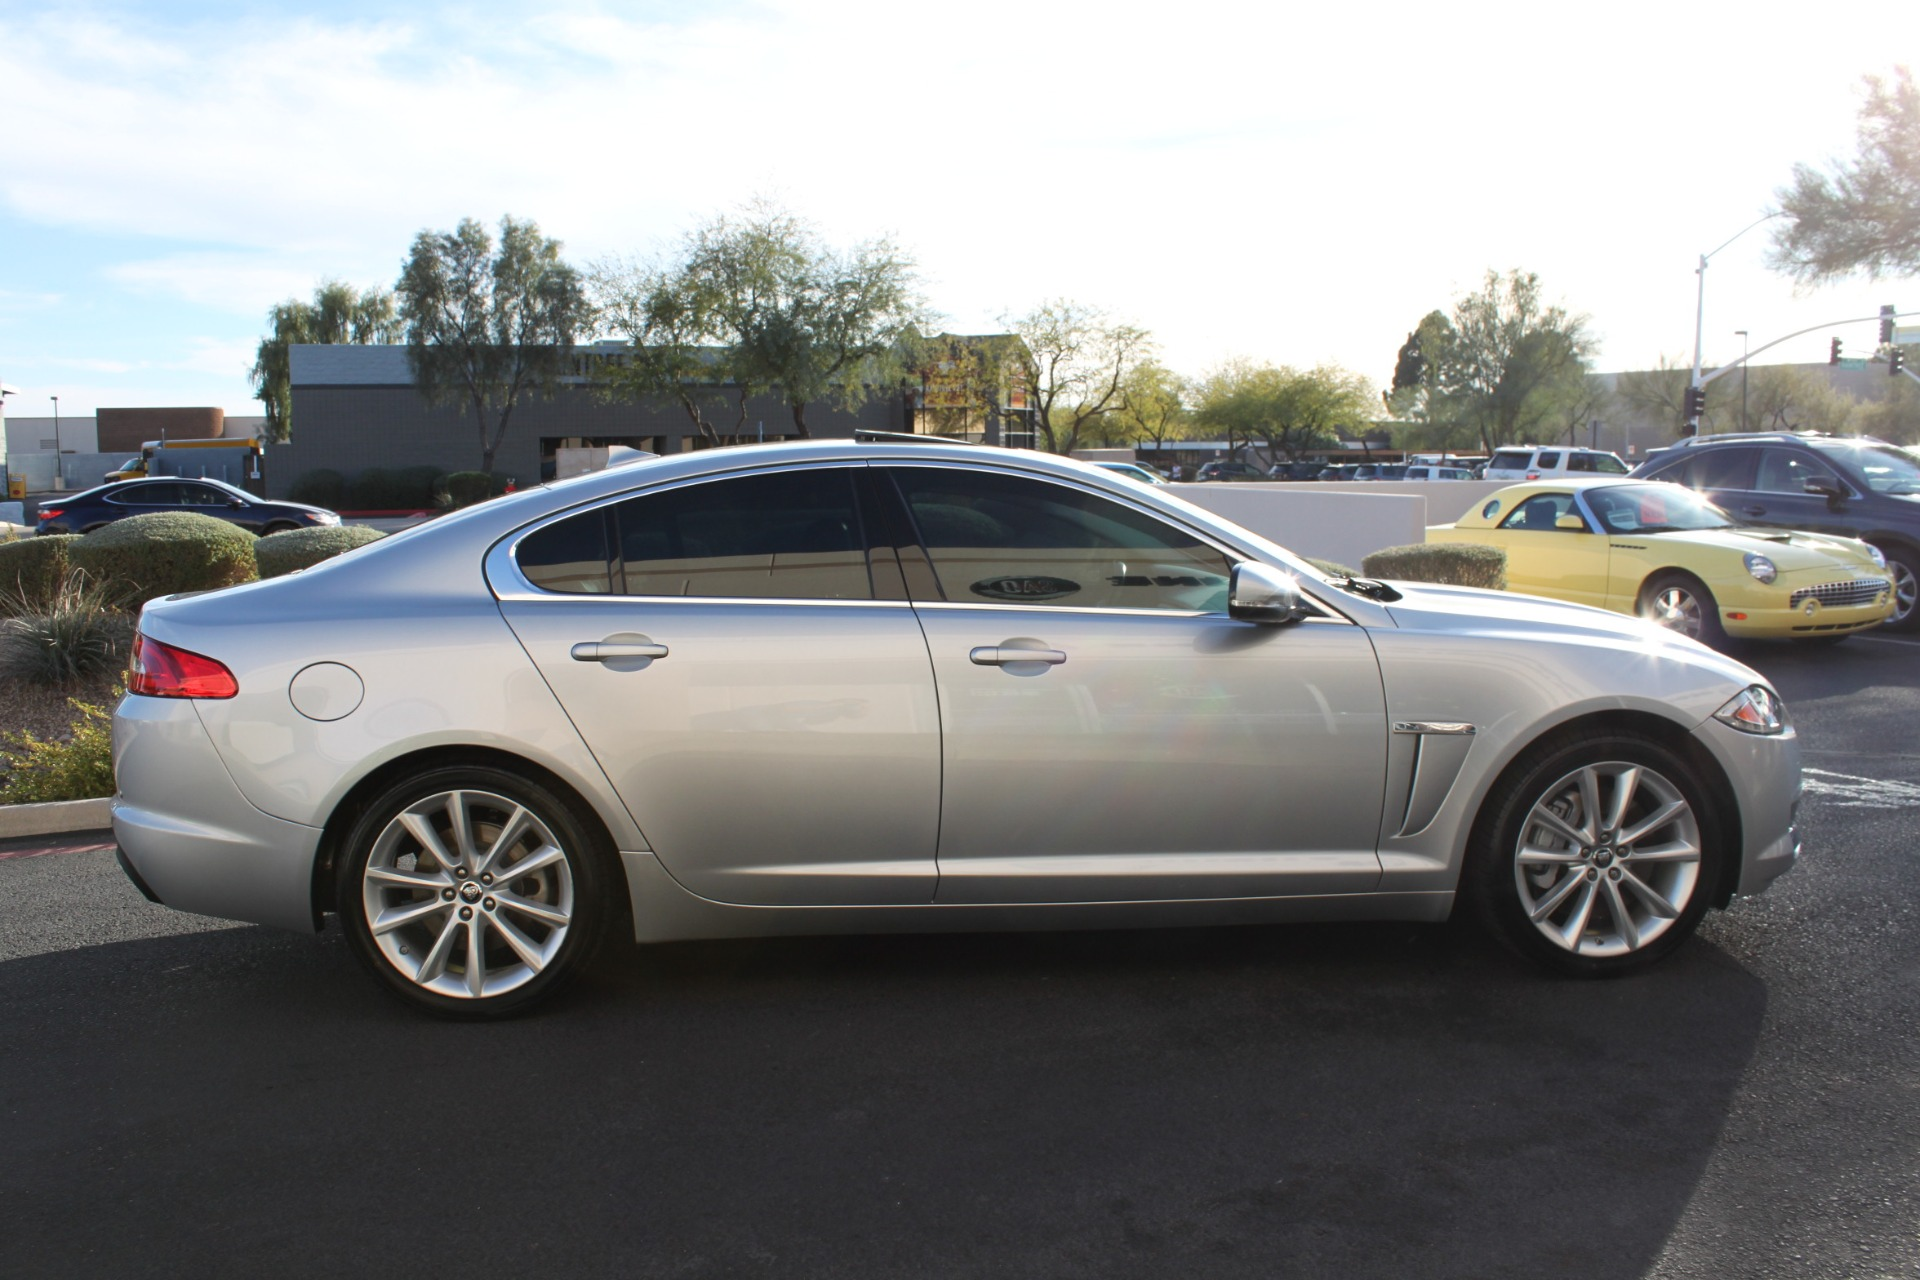 Used-2013-Jaguar-XF-I4-RWD-Chrysler